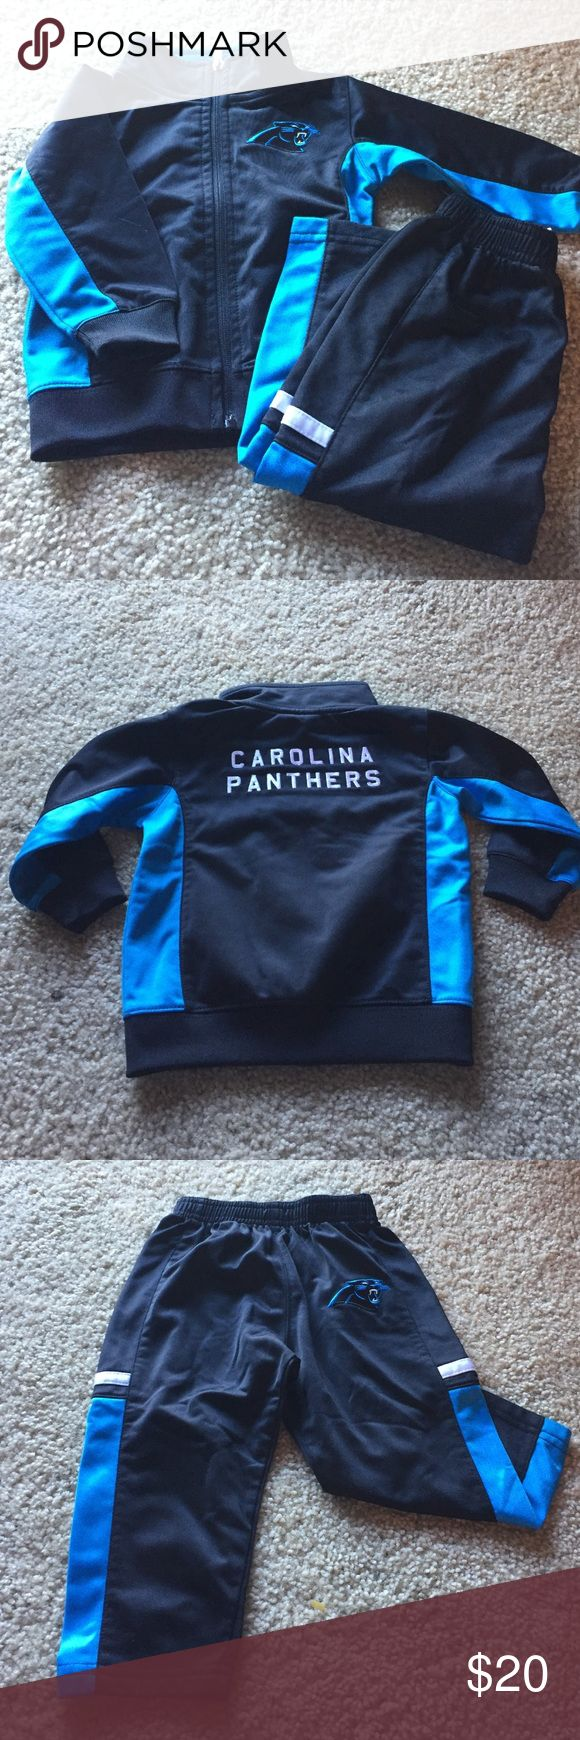 Carolina Panthers Track Suit NFL Track Suit NFL Matching Sets